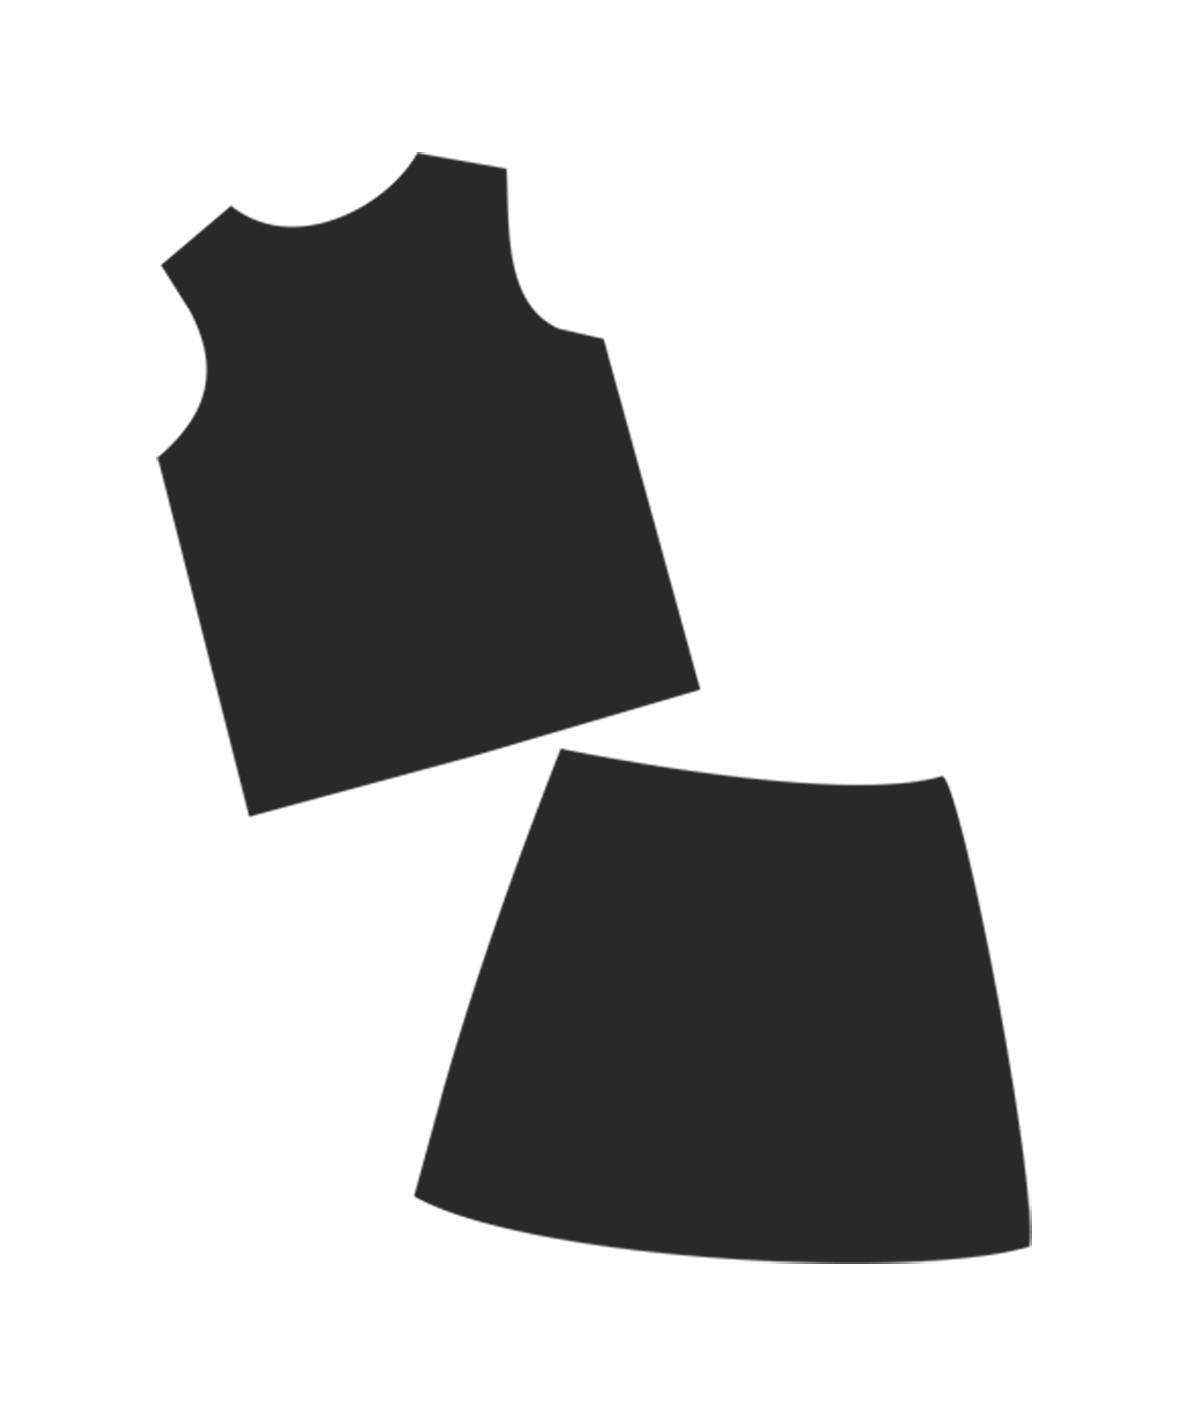 Chassé Echo Uniform Fit Kit